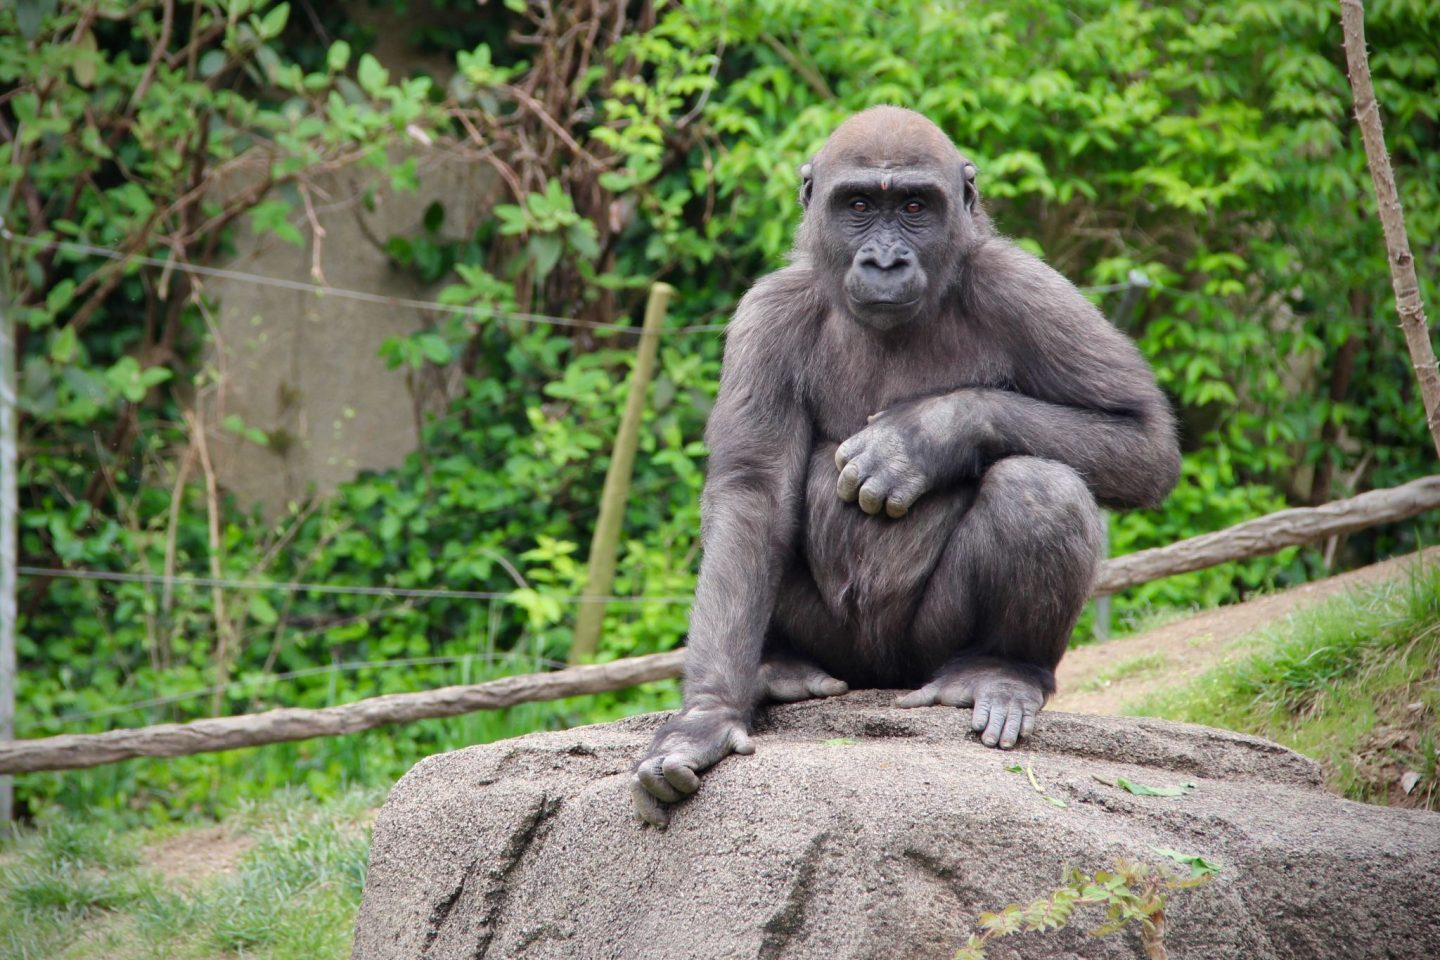 Gorilla at the Cincinnati Zoo ... The Spectacular Adventurer